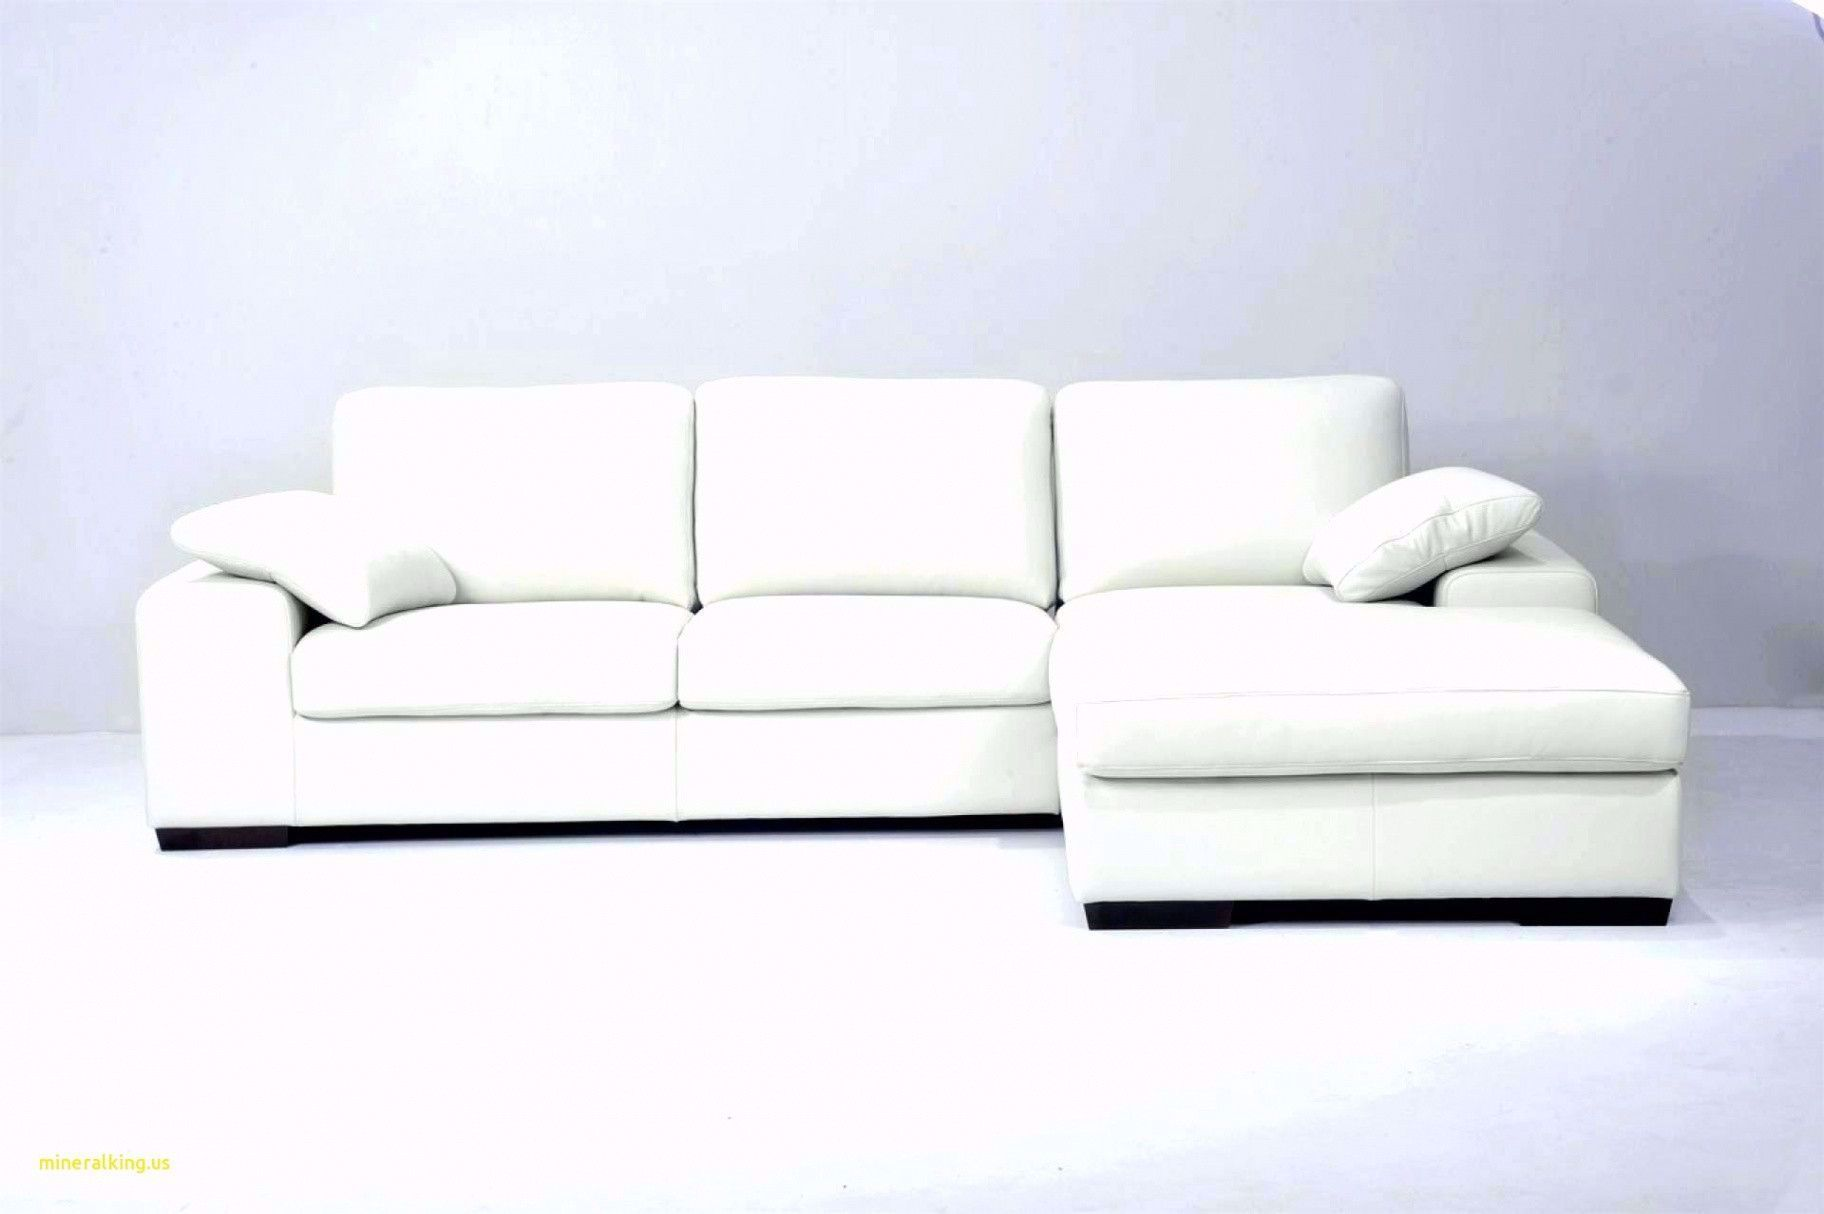 Recouvrir Un Abat Jour En Tissu In 2020 Canape Ikea Couch Transforming Furniture